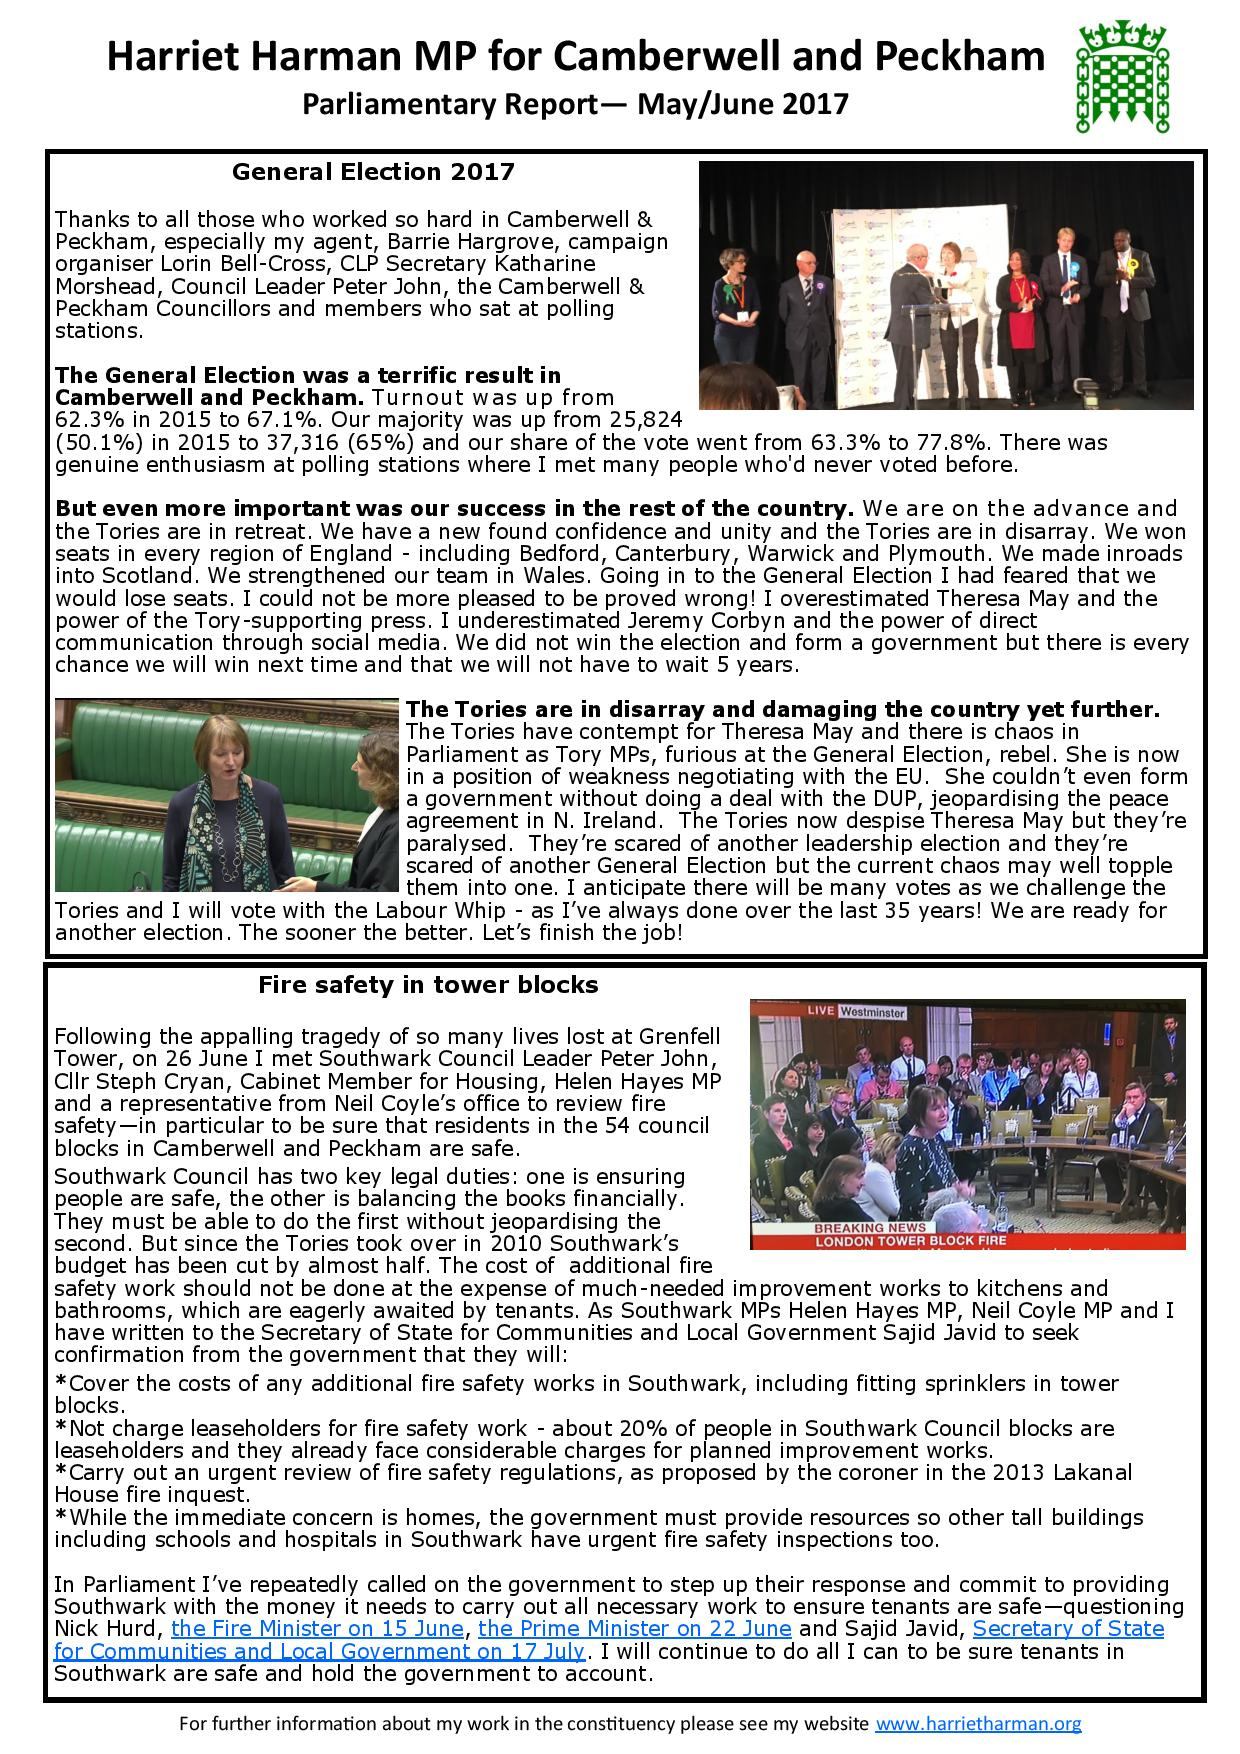 GC_Report_May-June_2017_RS_GE-page-001.jpg